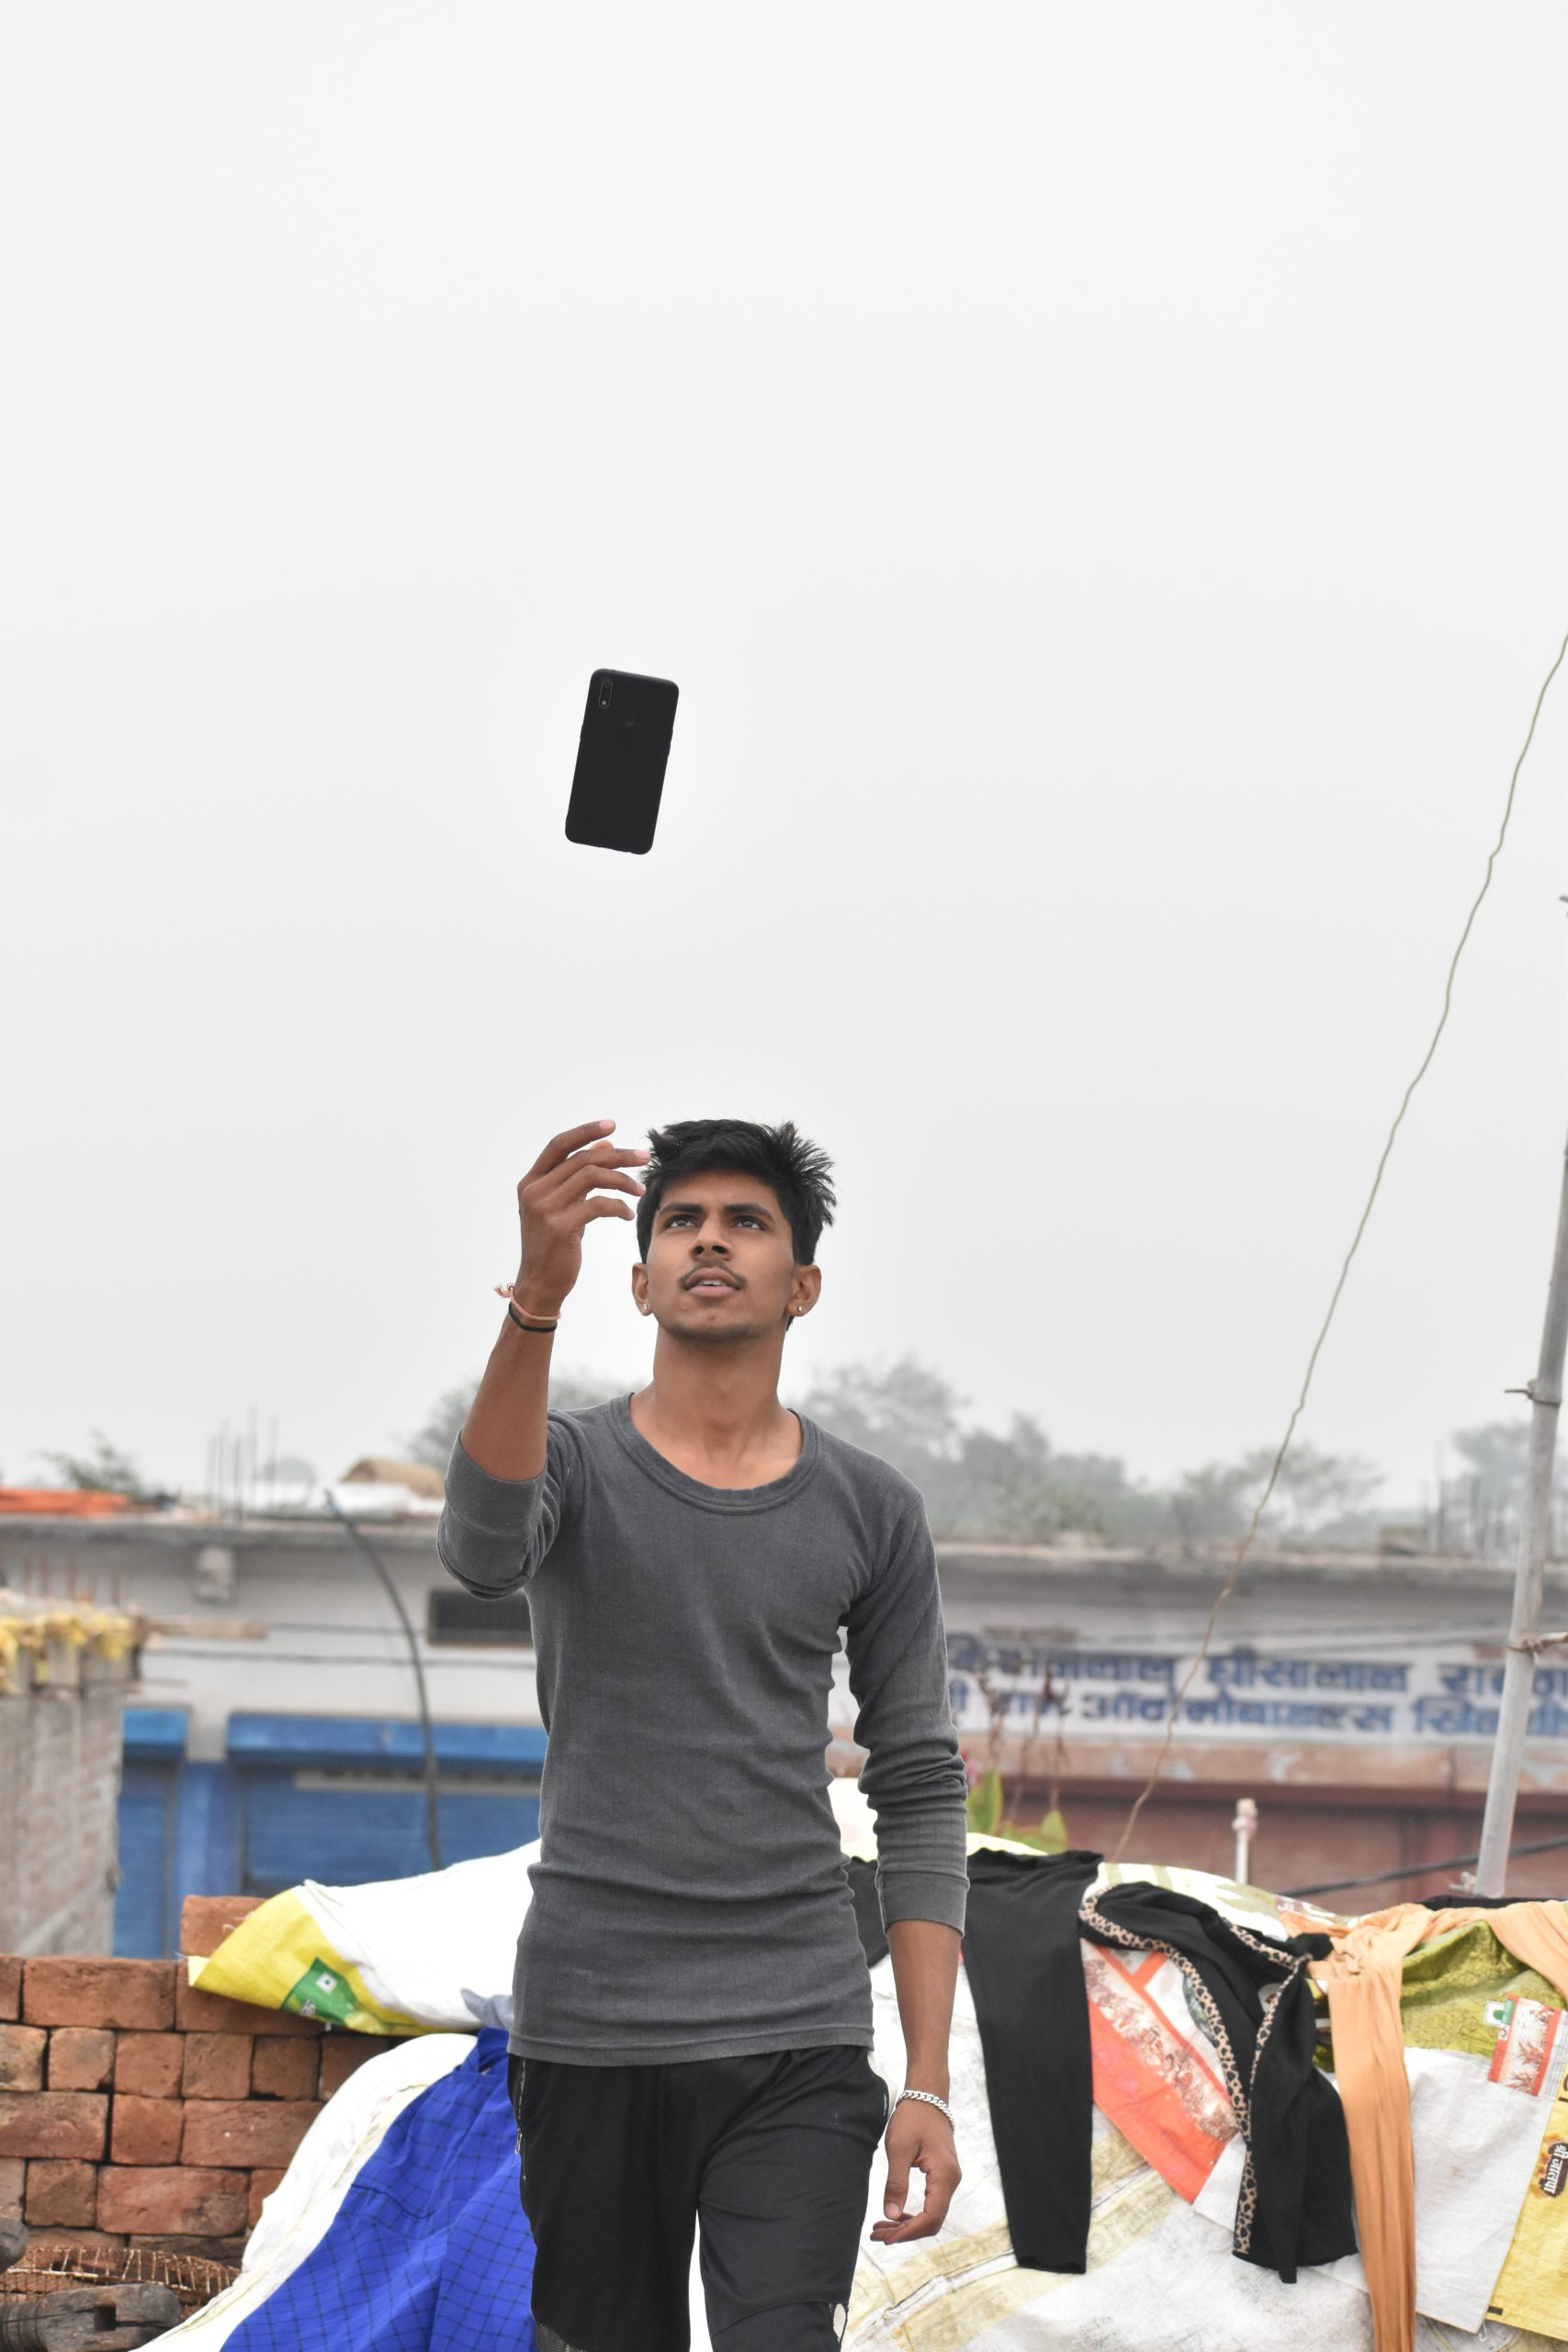 A boy tossing his phone in air